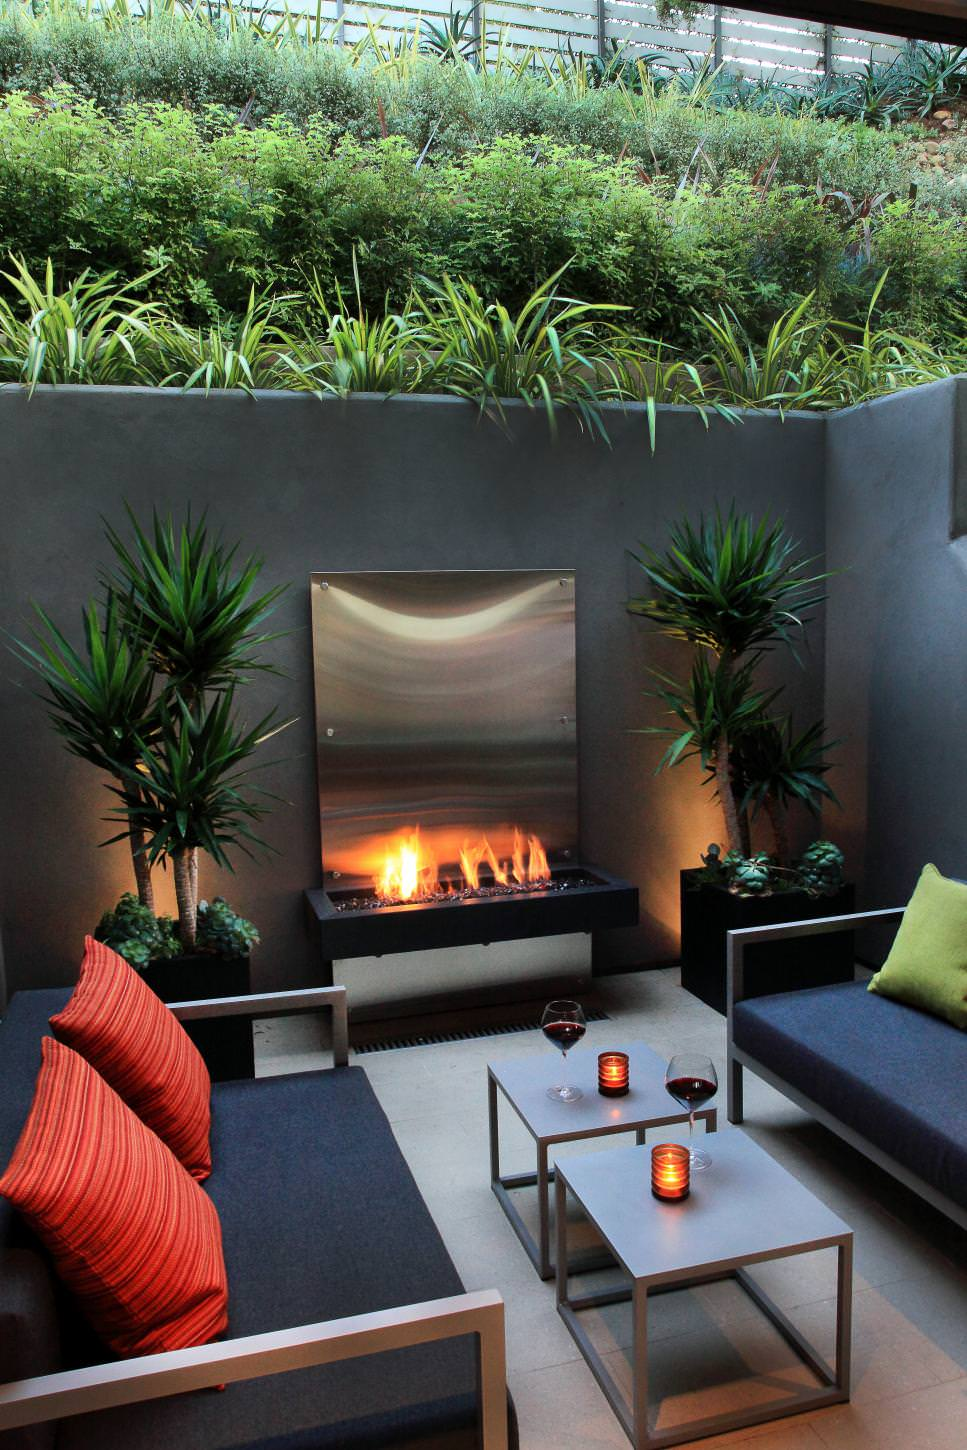 23 concrete wall designs decor ideas design trends for Patio and outdoor decor